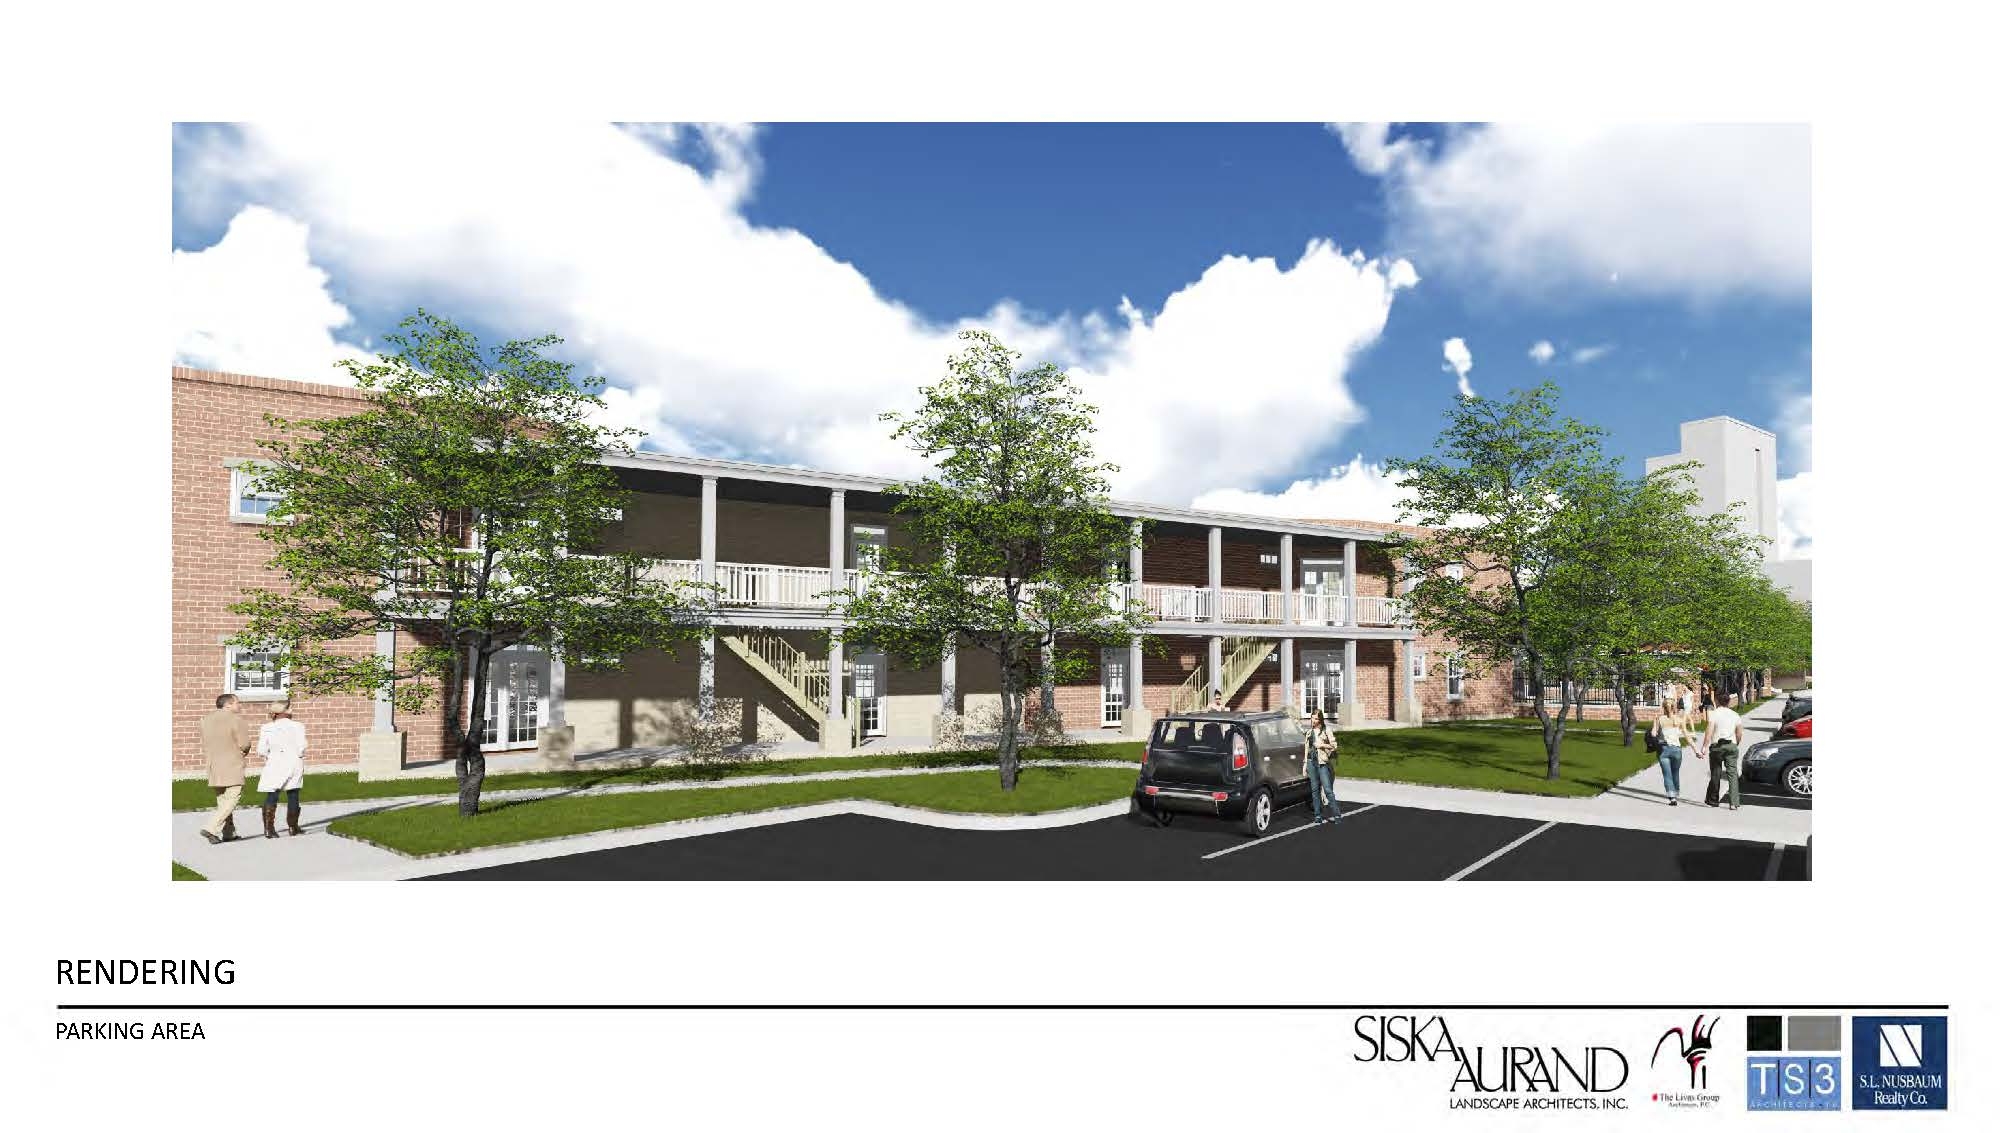 St. Paul's Apartments, Rendering, Norfolk